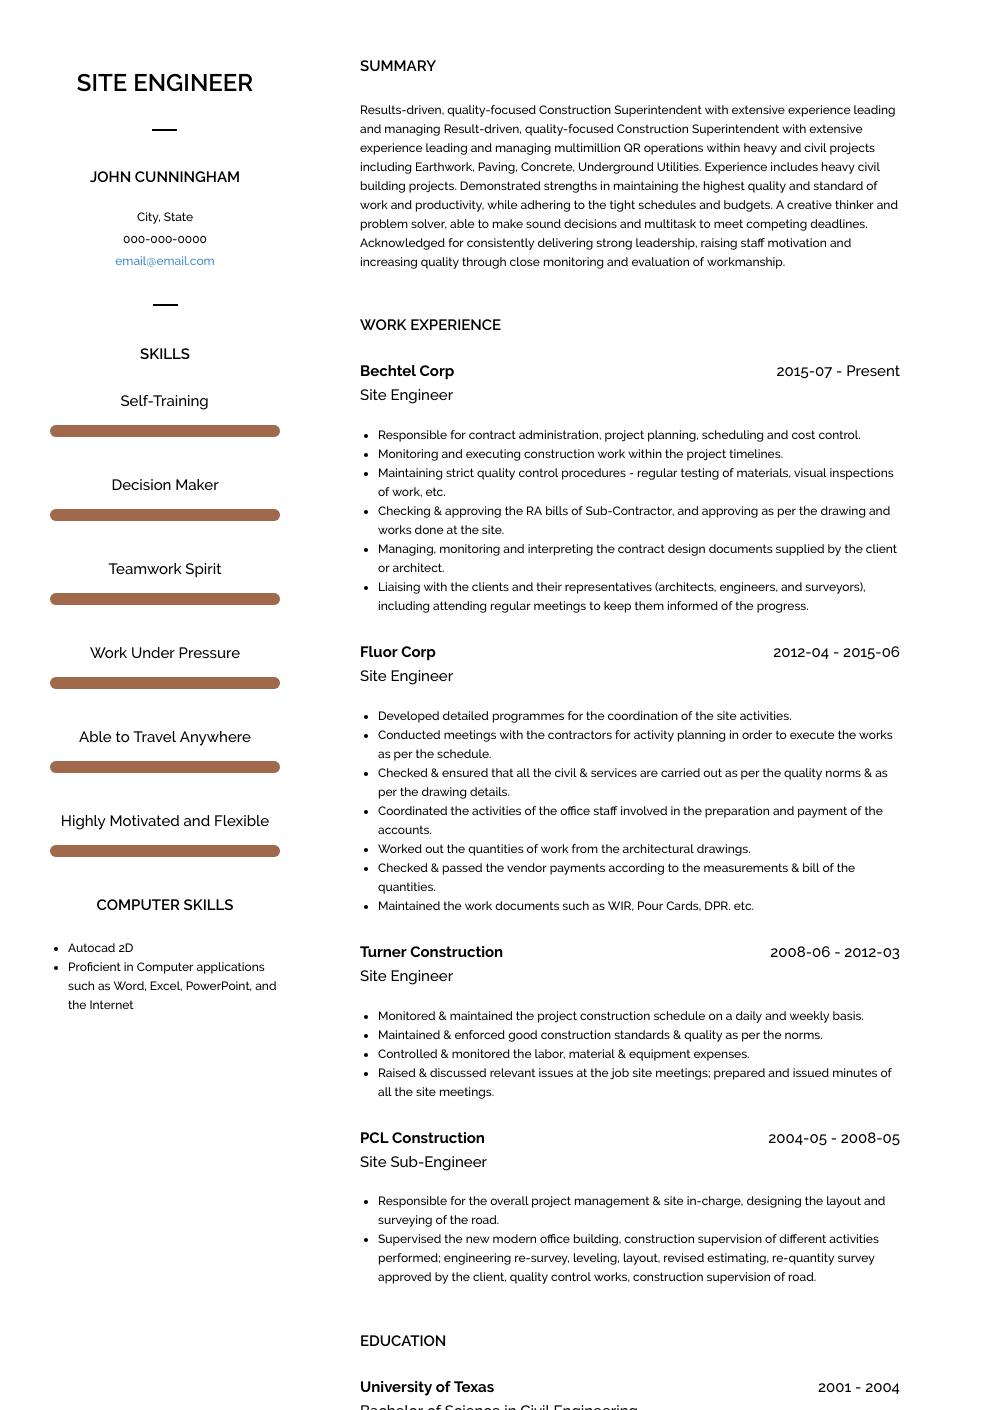 Site Engineer  Resume Samples and Templates   VisualCV